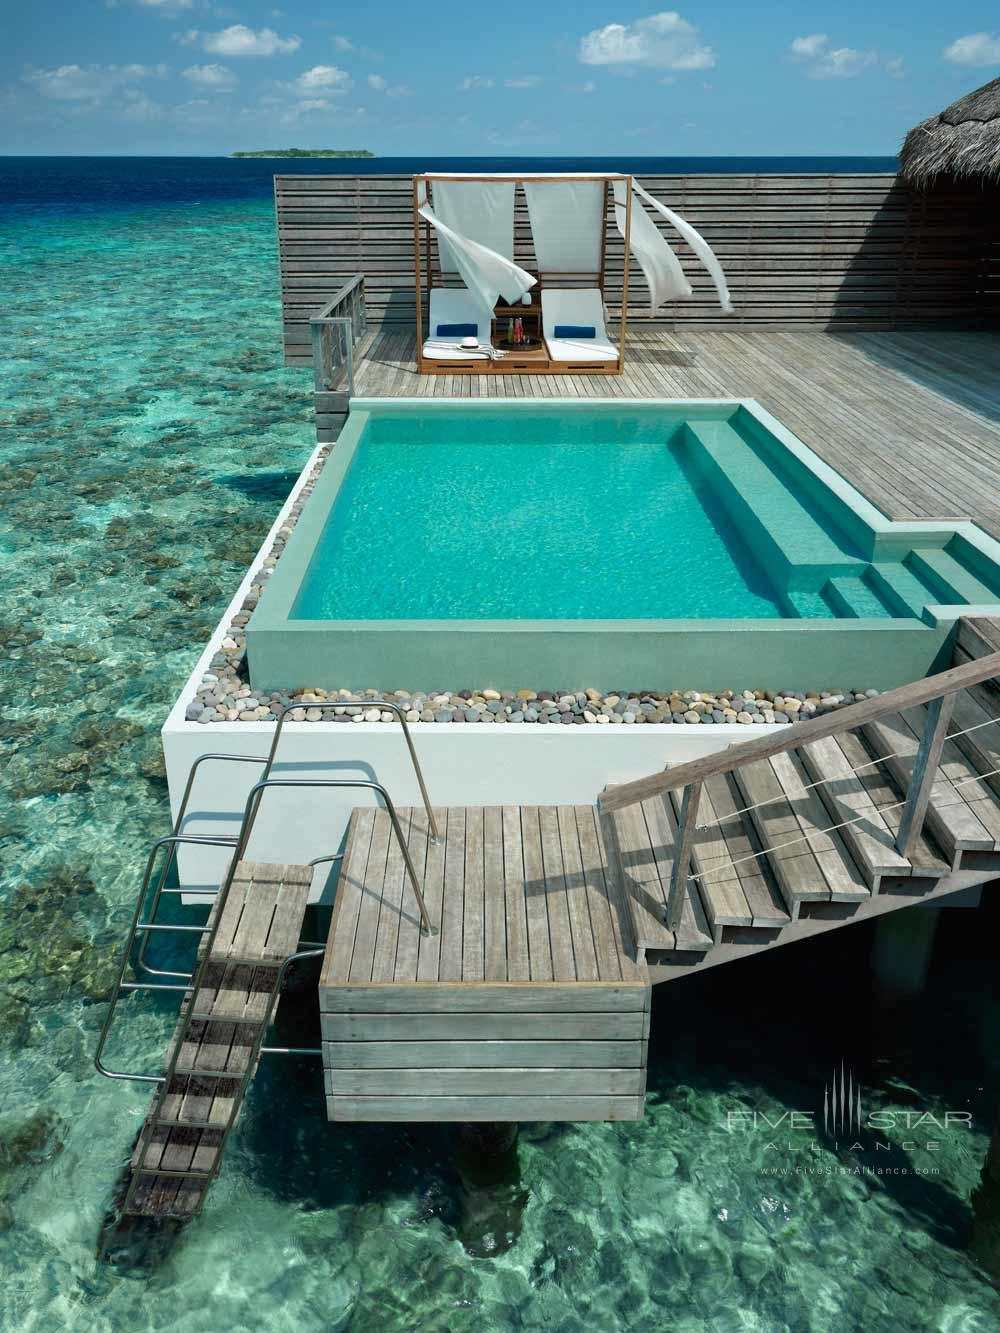 Ocean Villa Plunge Pool by the Sea at Dusit Thani Maldives